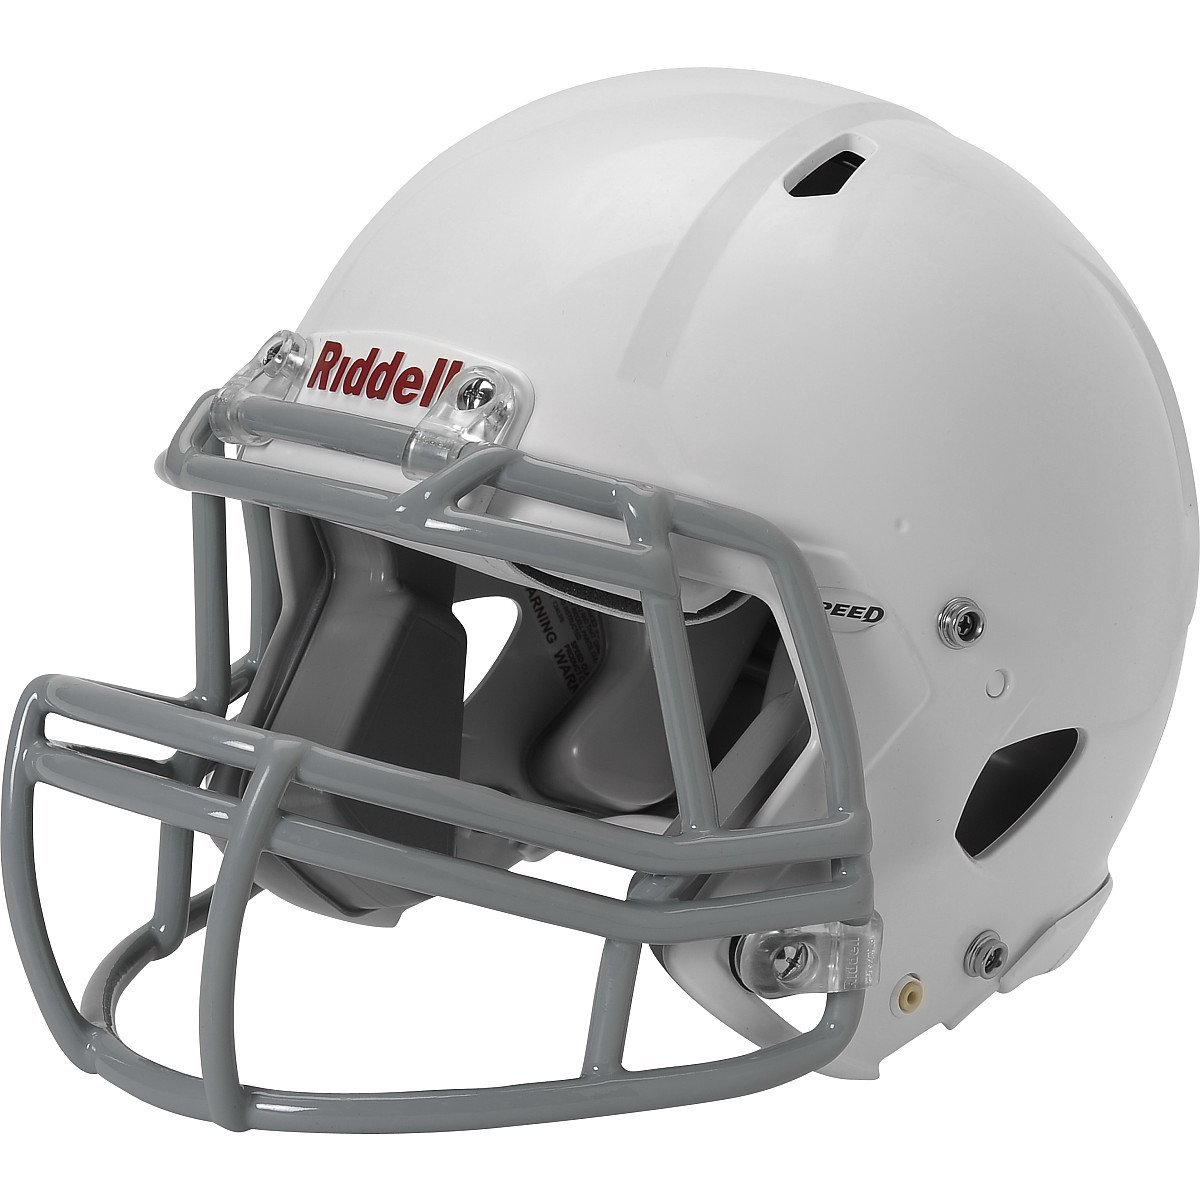 Top 10 Youth Football Helmets Reviewed In 2017 ...